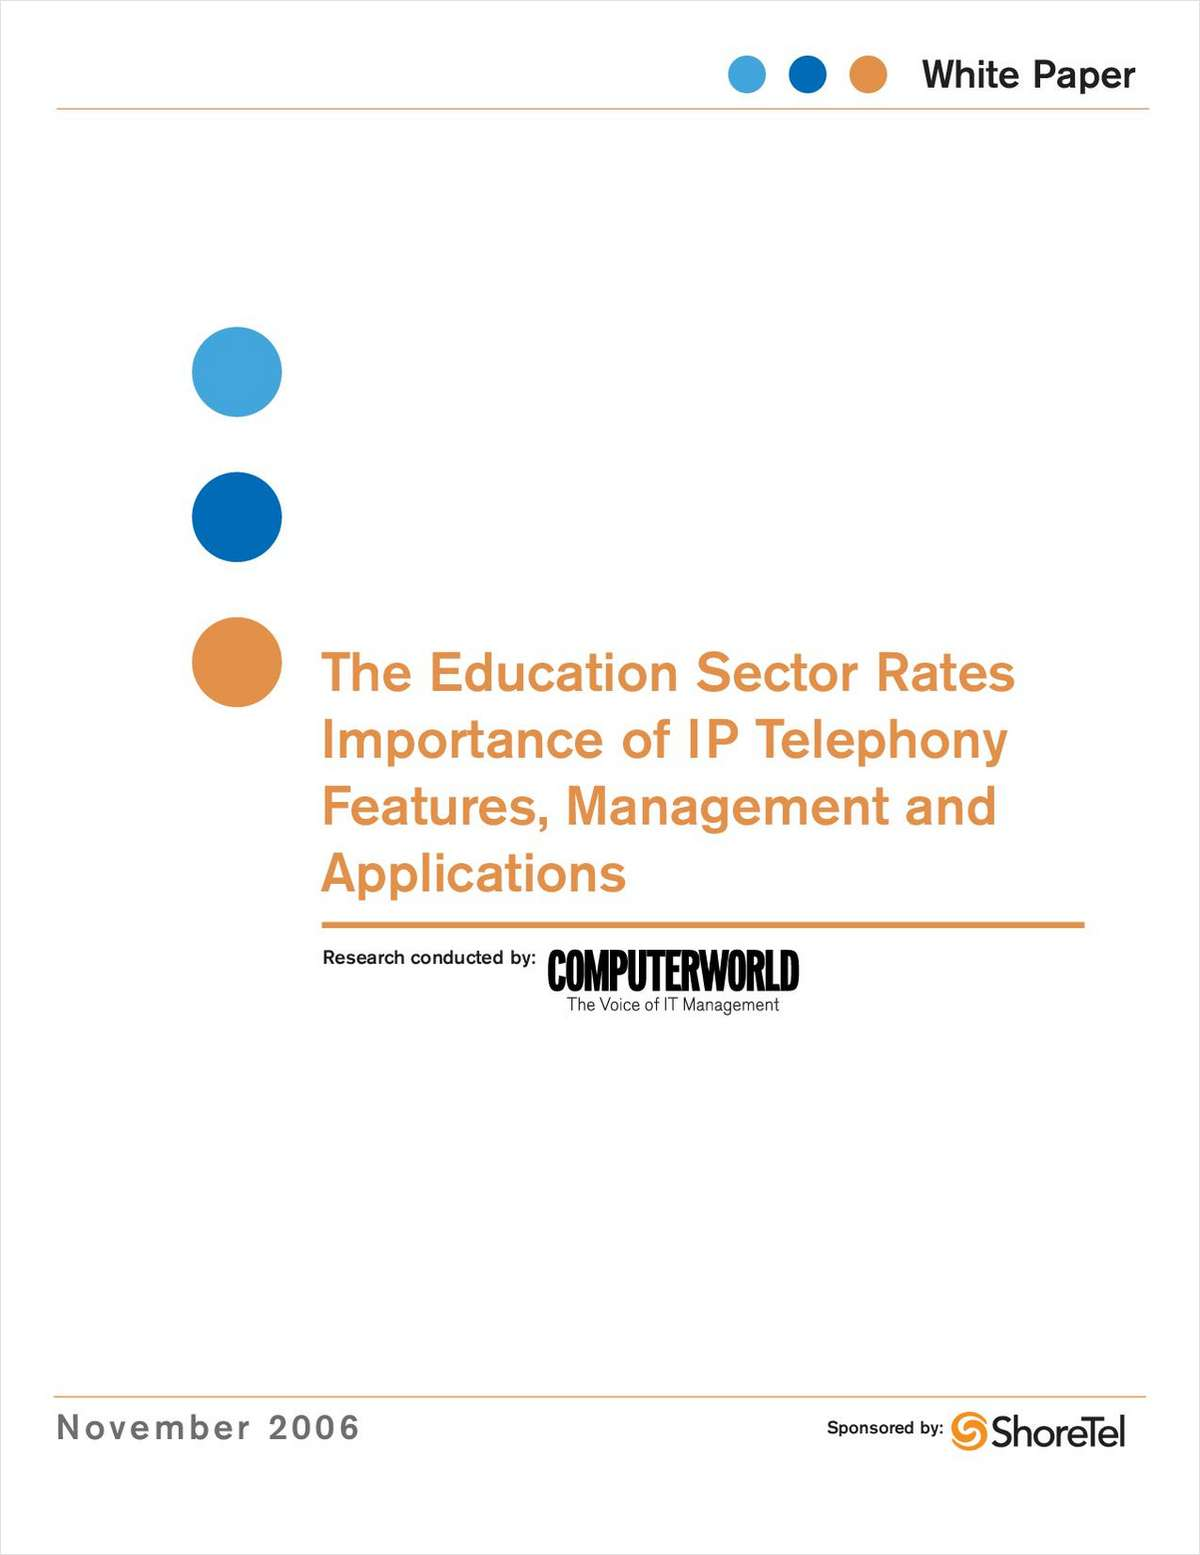 IP Telephony Features, Management and Application Importance in Education